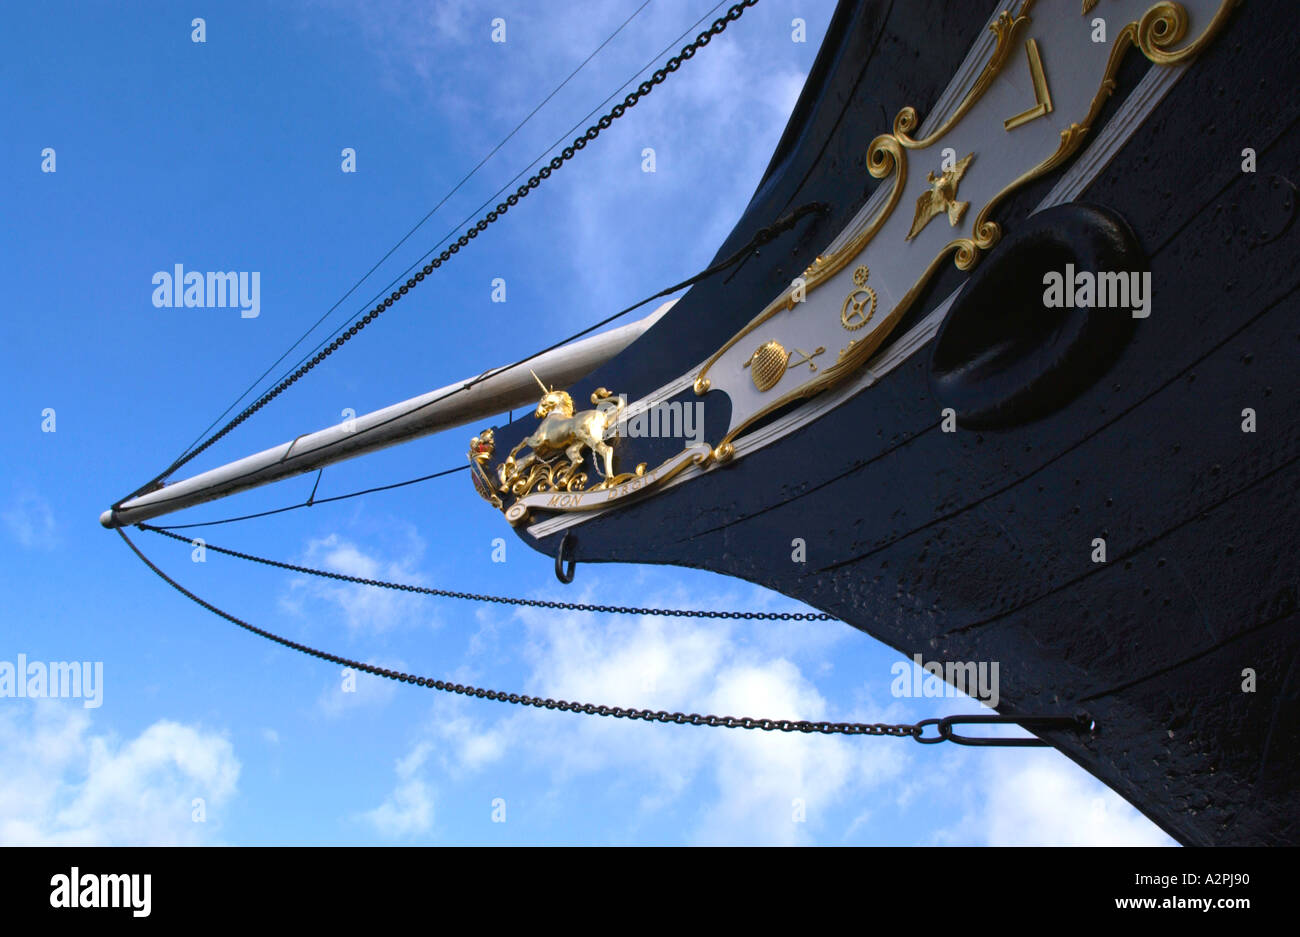 Bow of the SS Great Britain iron ocean-going passenger steamship built by Victorian engineer Isambard Kingdom Brunel in Bristol - Stock Image